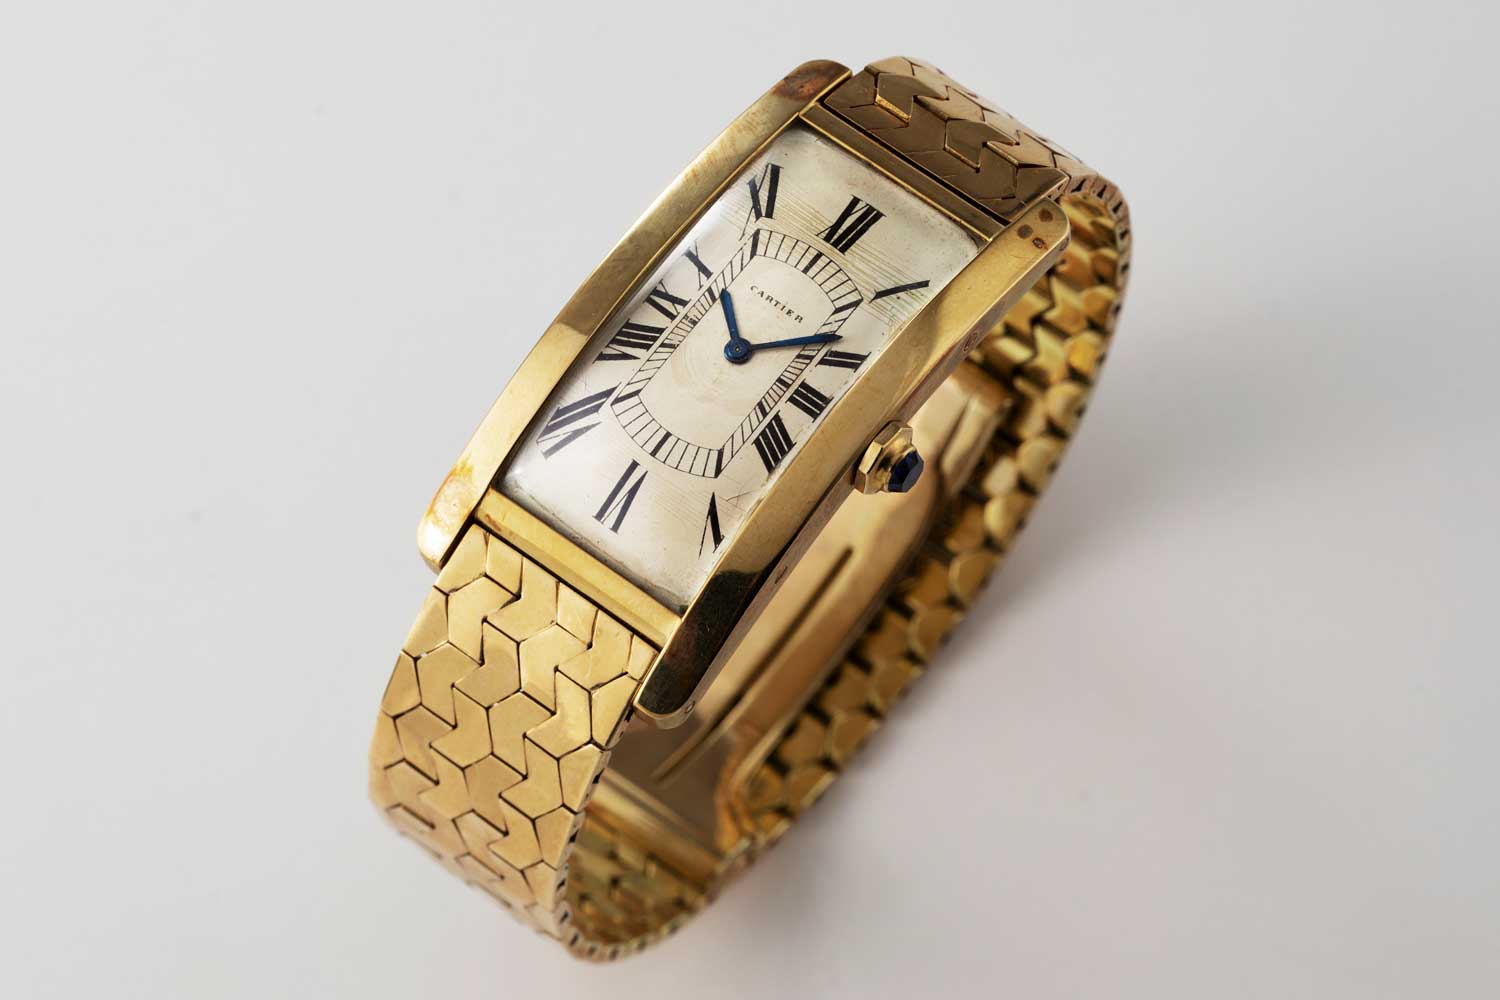 1951 yellow gold Cartier Tank Cintrée with original yellow gold bracelet; this particular example is from the private collection of Auro Montanari (©Revolution)